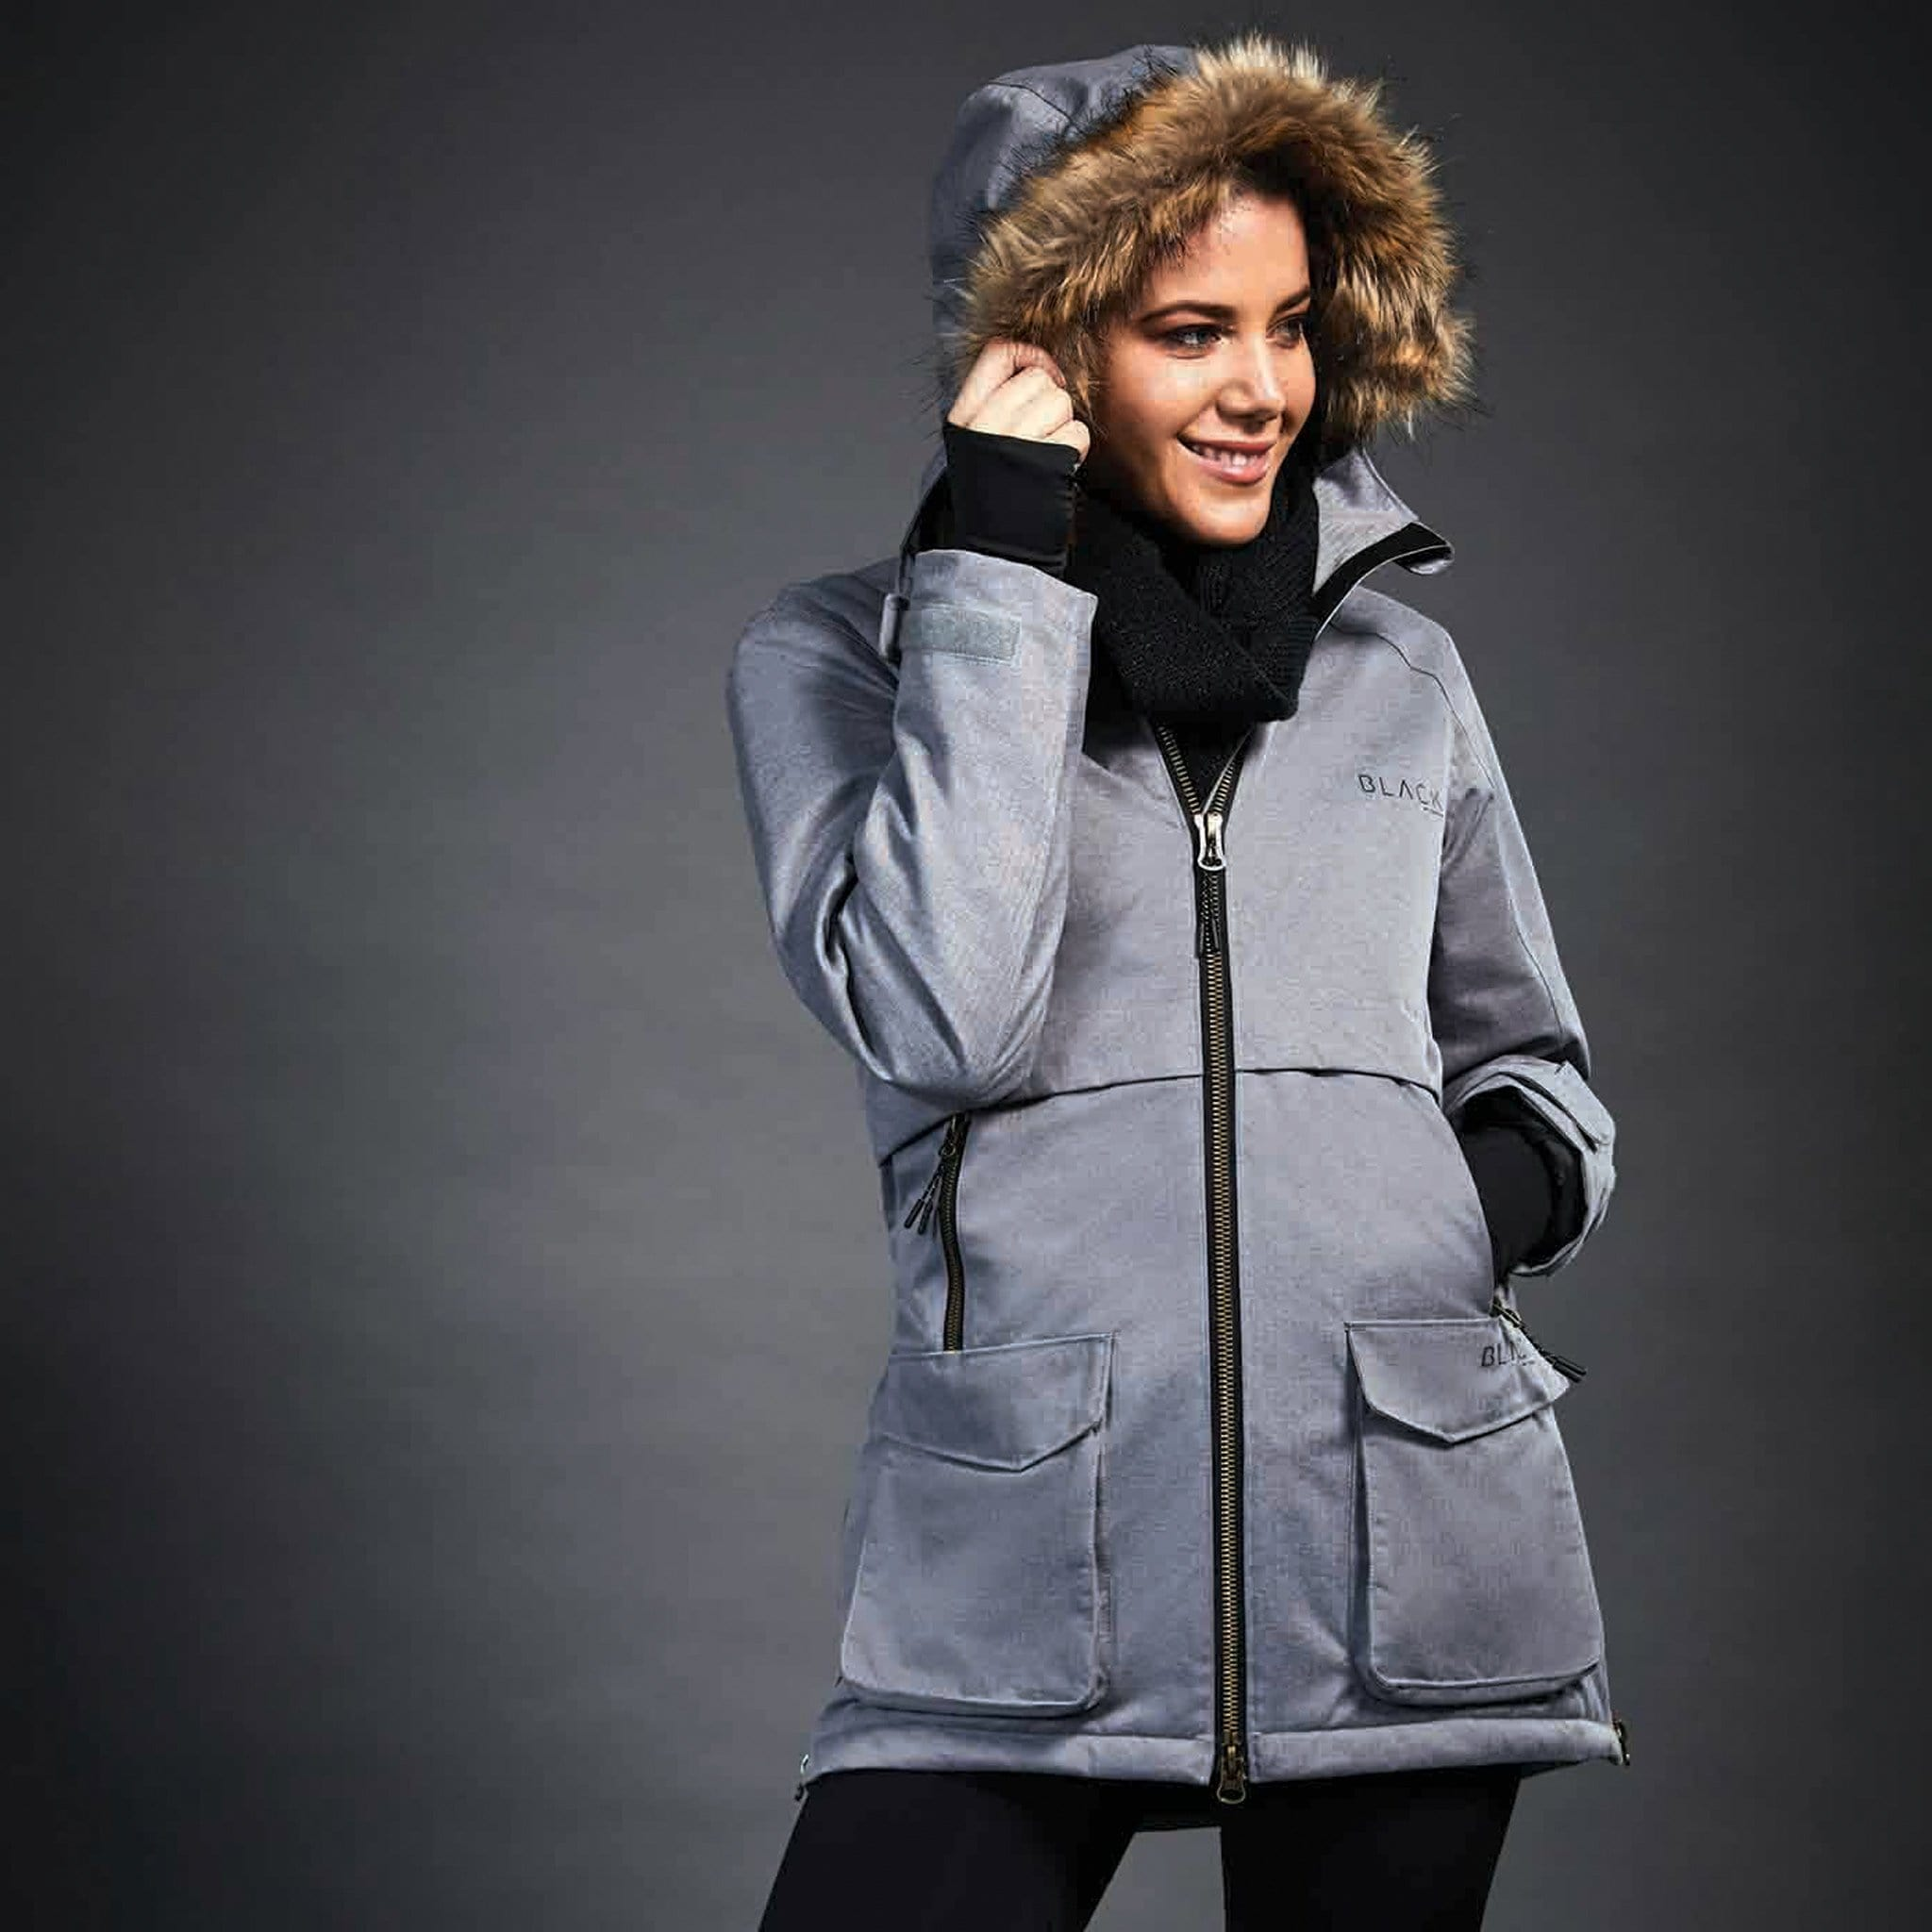 Dublin Black Wendy Waterproof Coat 1000561001 Charcoal On Model With Hood Up